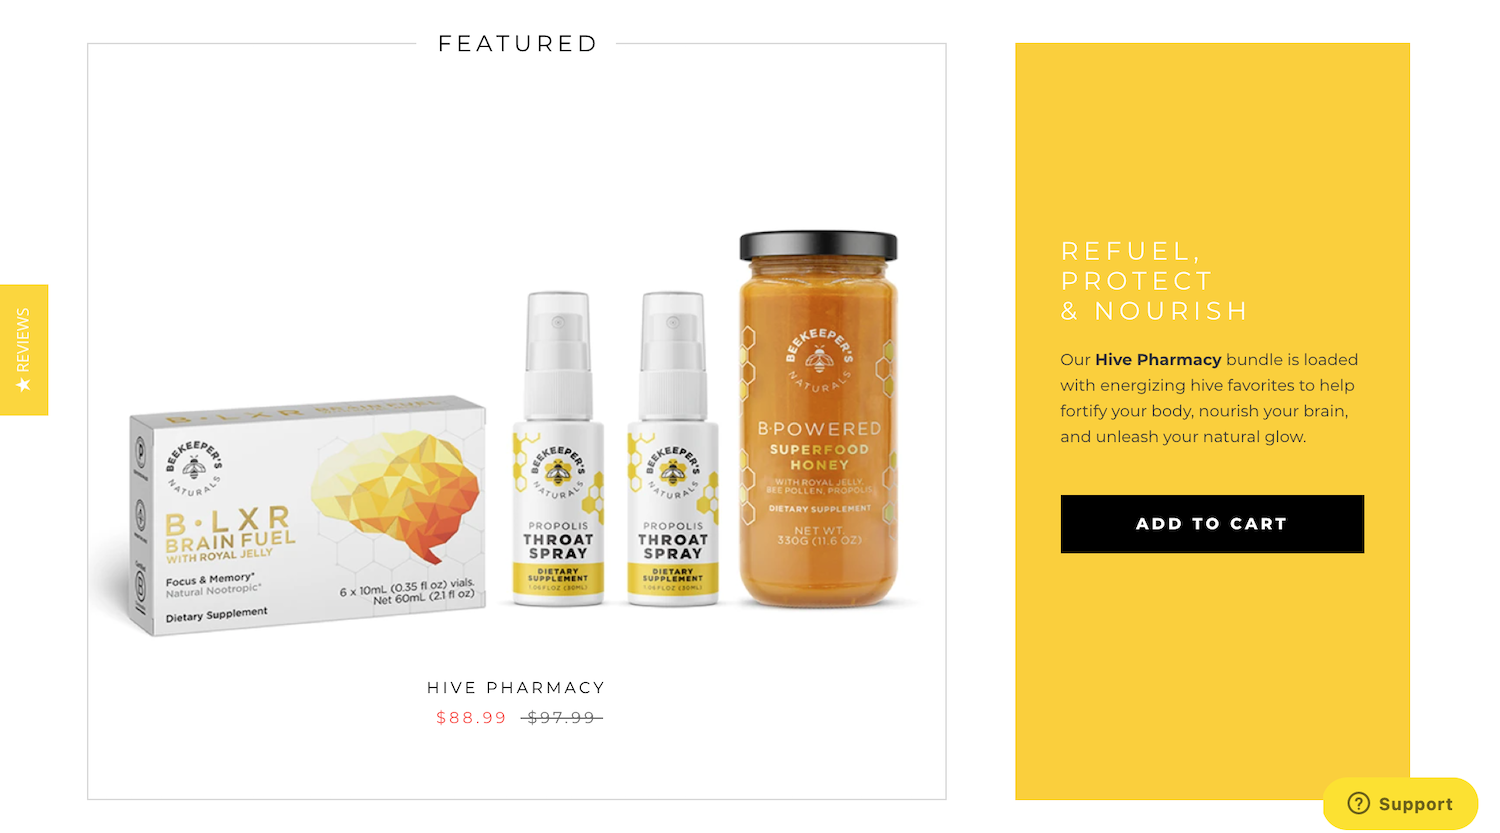 beekeepers_featured